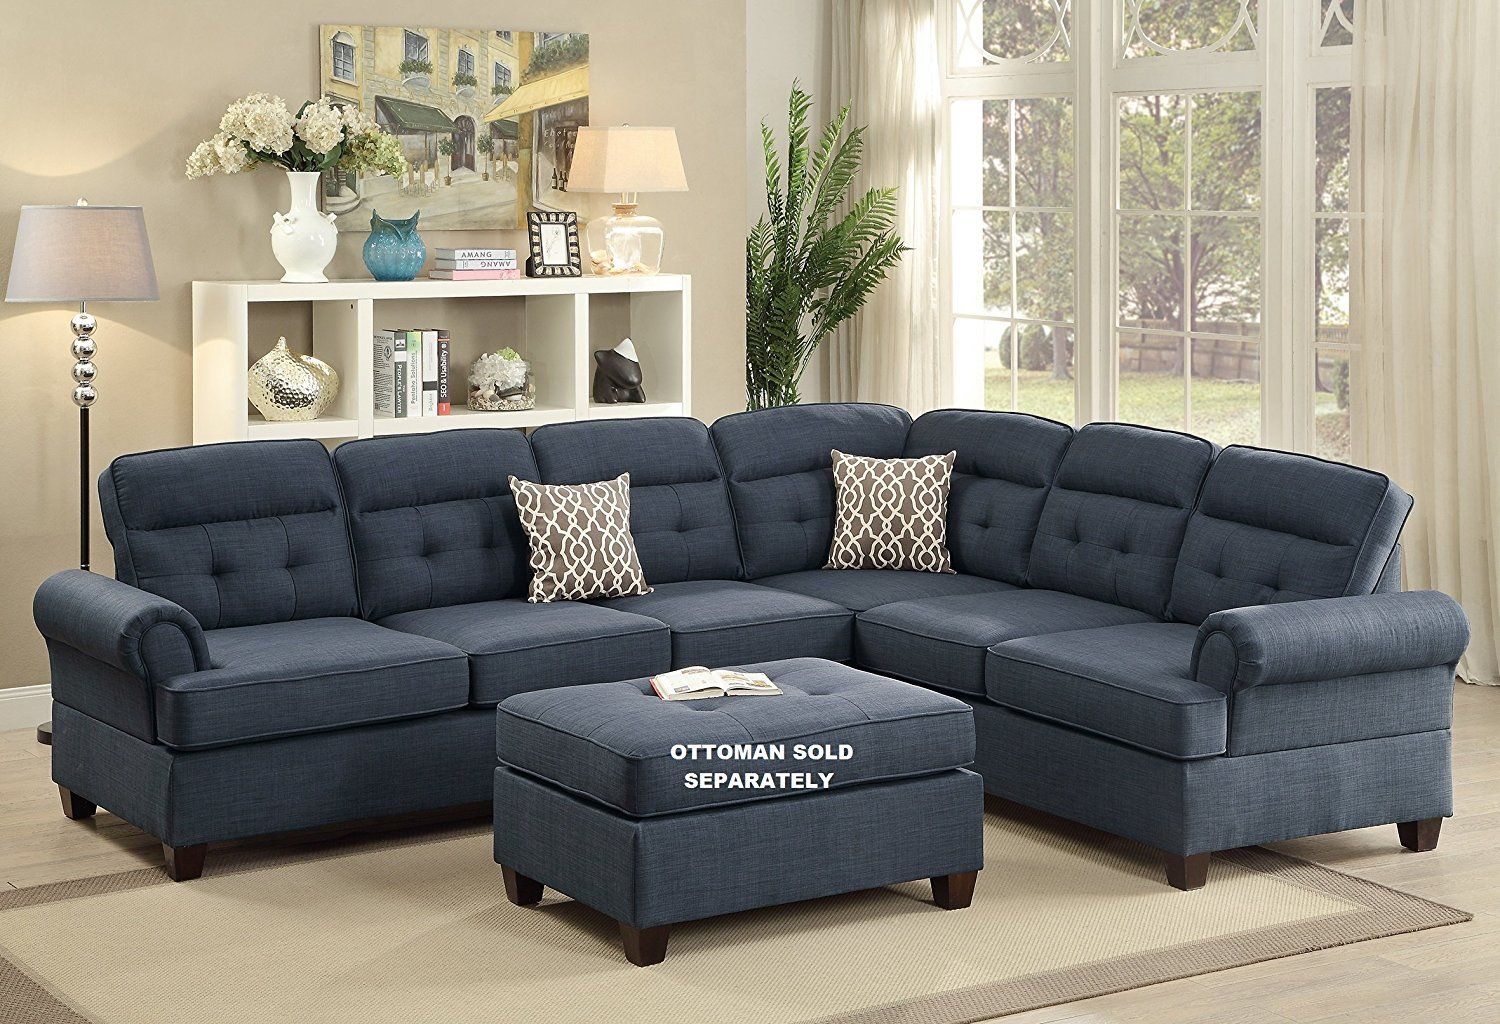 Amazon Sofa Deals 996 Amazon Tynan 2 Pieces Sectional Sofa Set Upholstered In